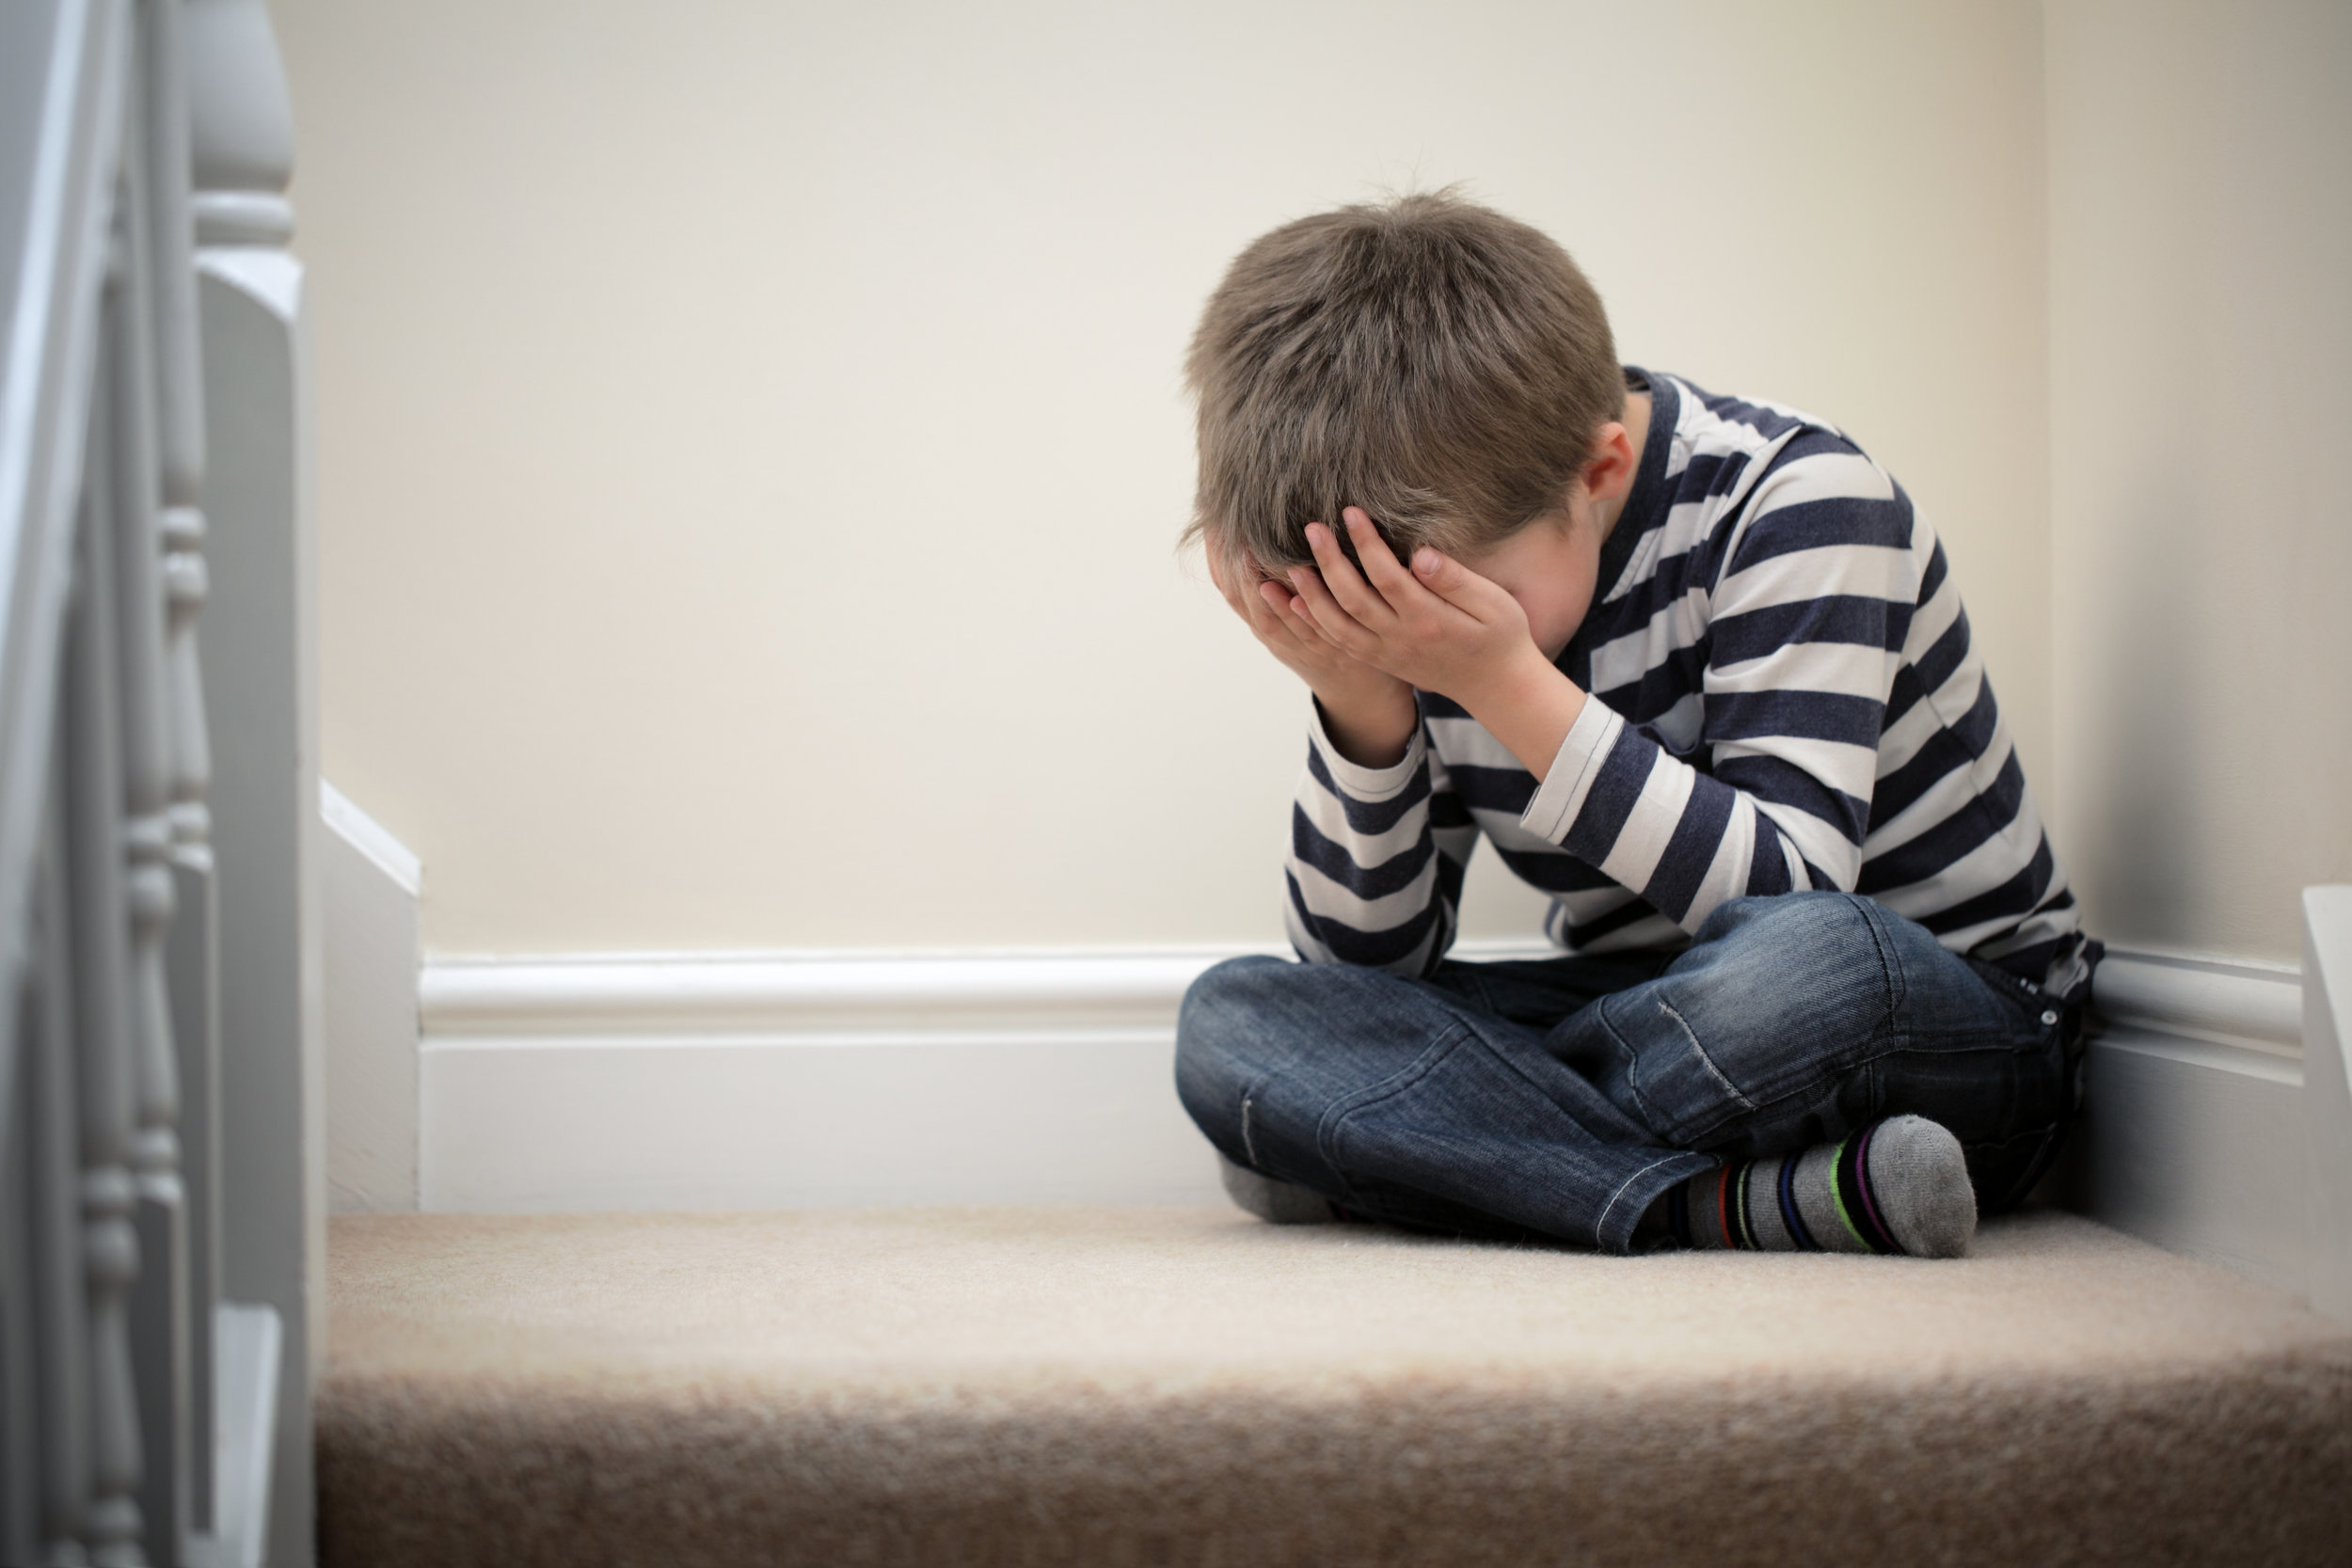 This isn't Tony. This is a stock photo of a child suffering from end-of-summer ennui.